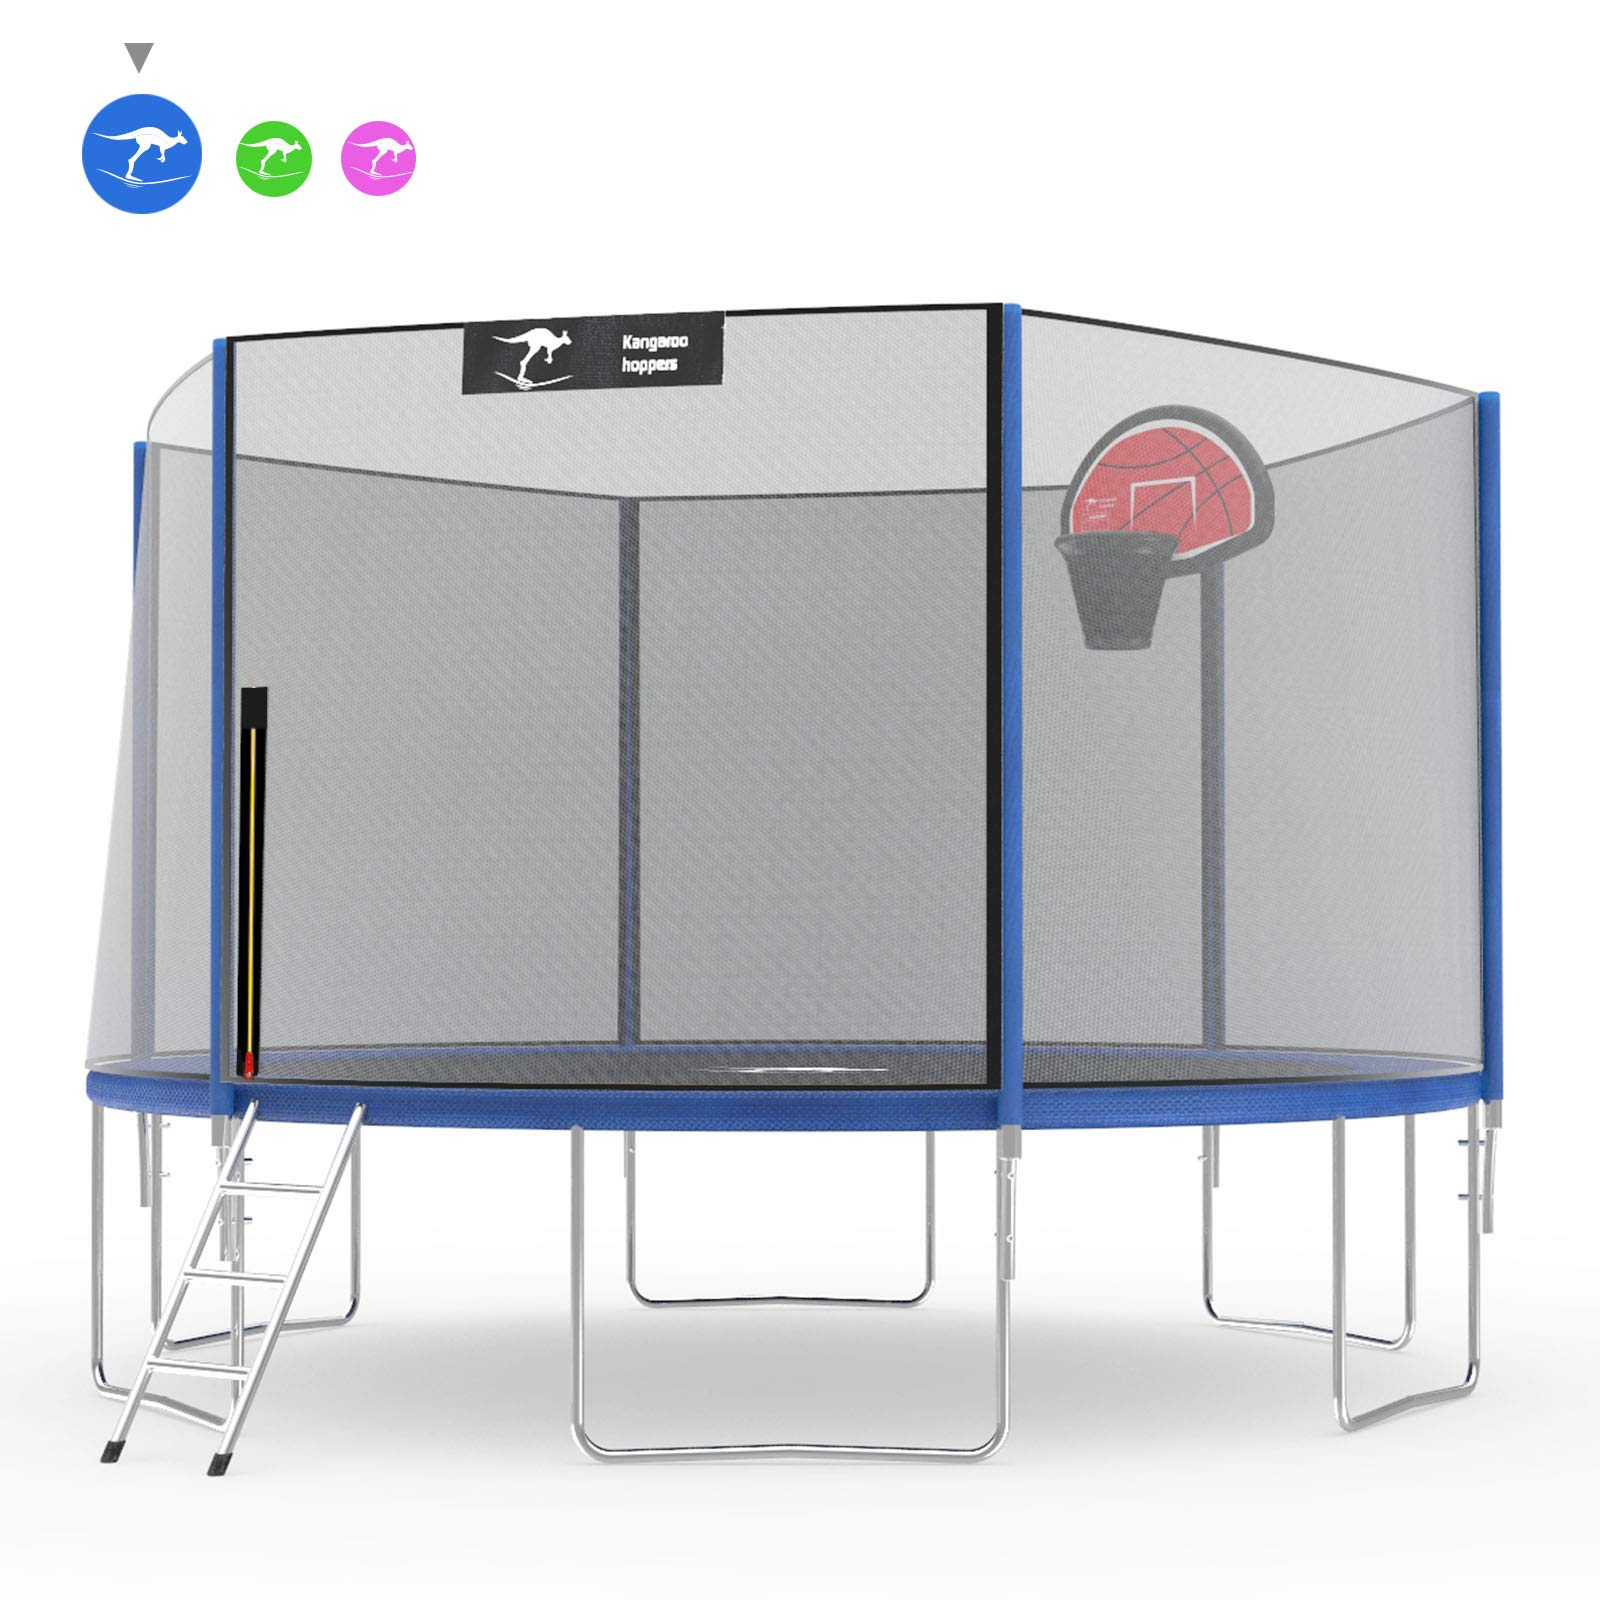 Kangaroo Hoppers Trampoline with Safety Enclosure,Jumping Mat,Ladder and Spring Cover Padding,12 15 FT Available,Multiple Color Choices, TUV and ASTM Tested, Best Outdoor Gift for Kids(Blue, 12FT)